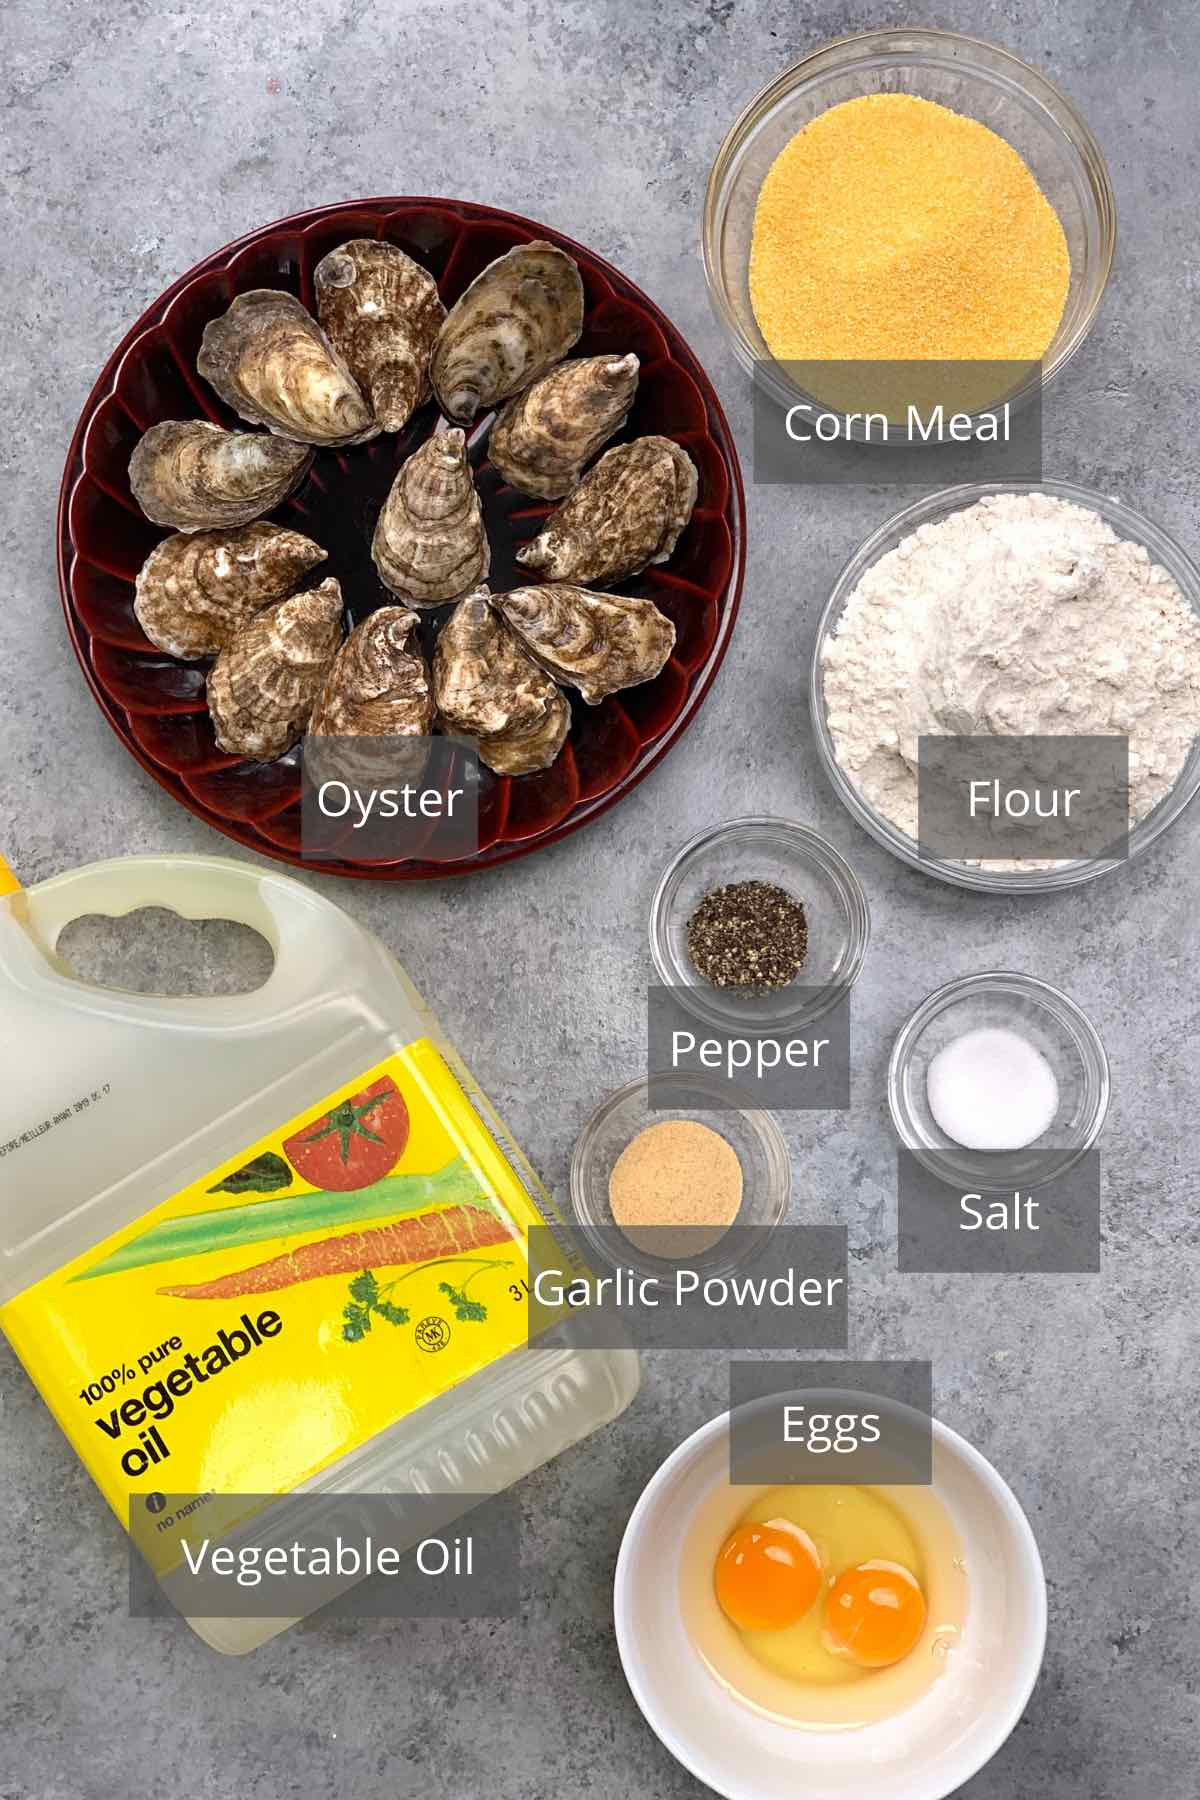 Overhead view of the ingredients for making fried oysters